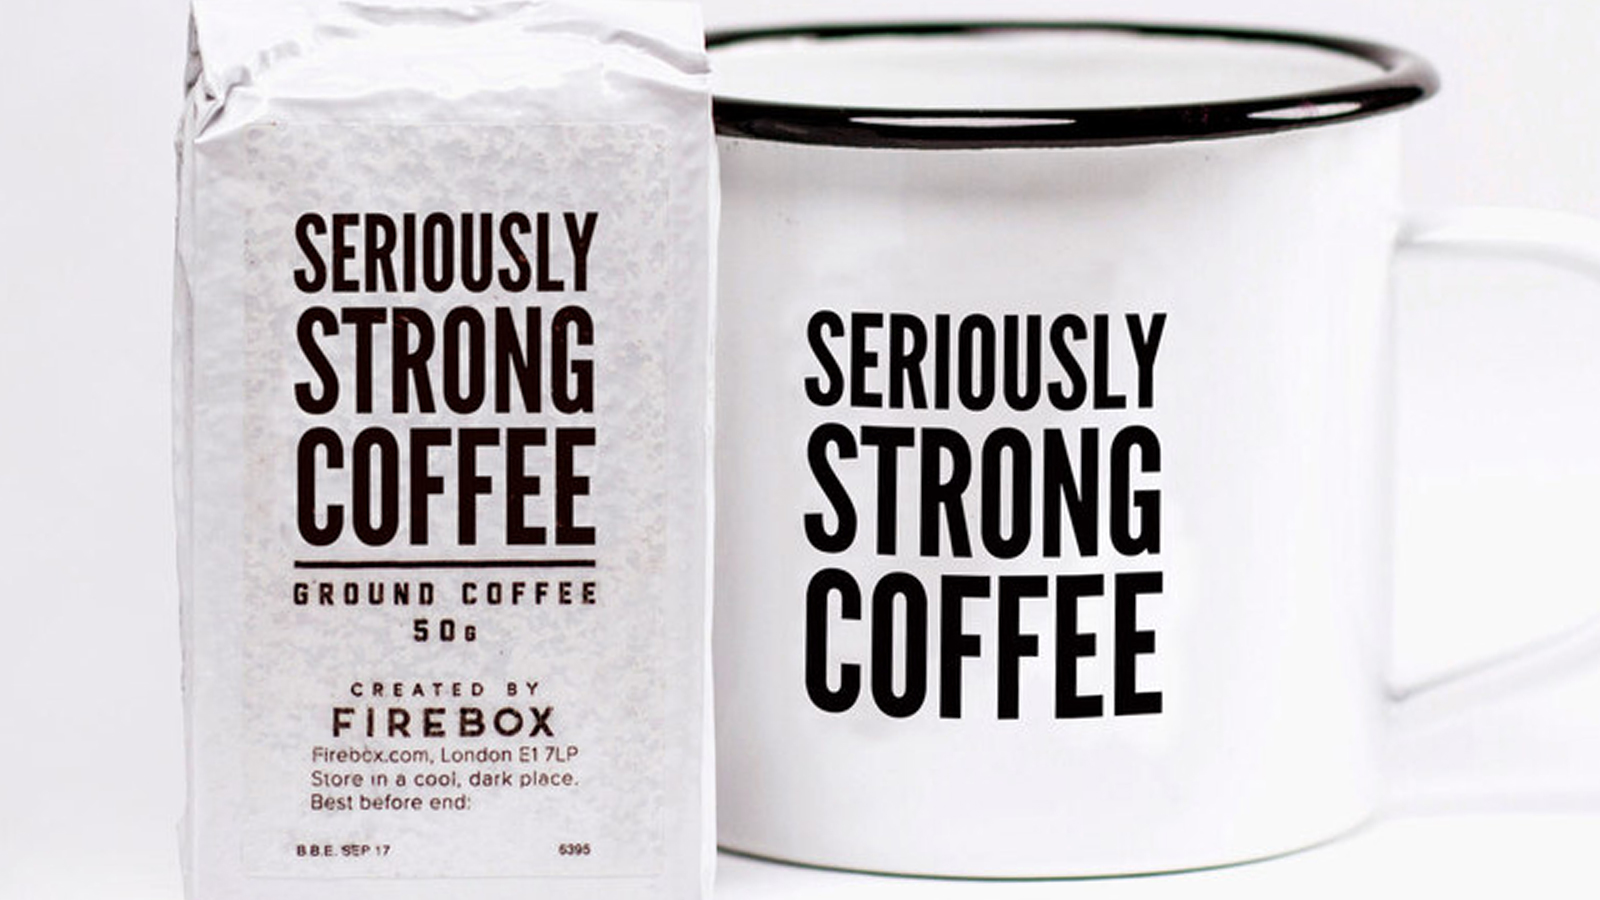 Seriously Strong Coffee kit